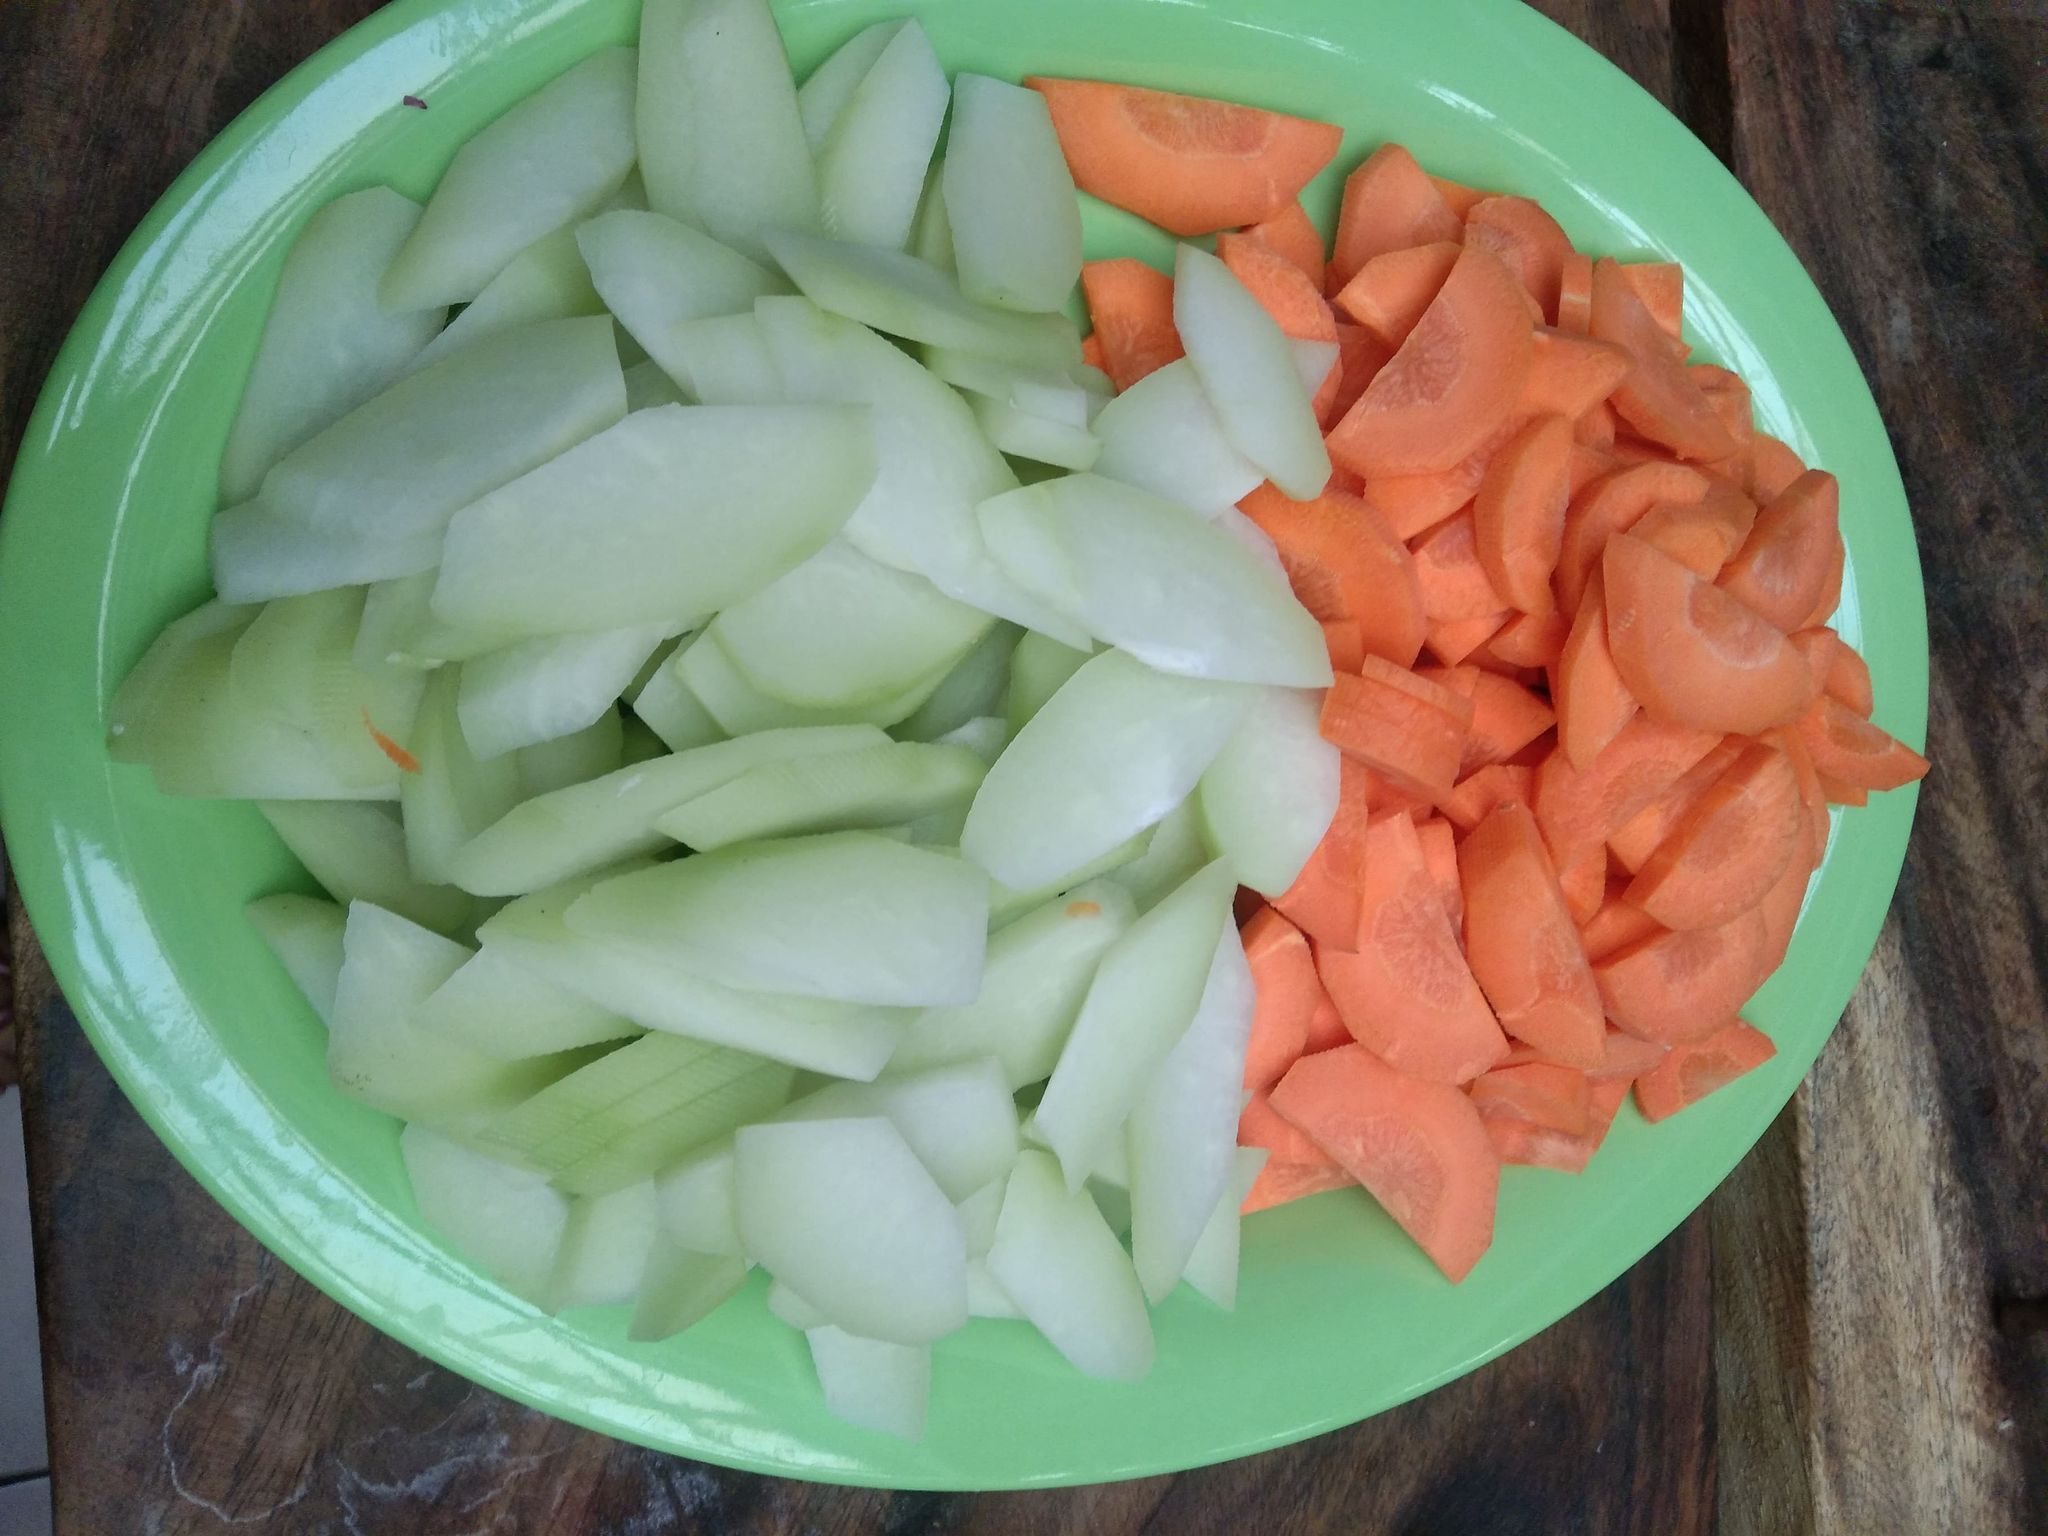 Slices of sayote and carrots